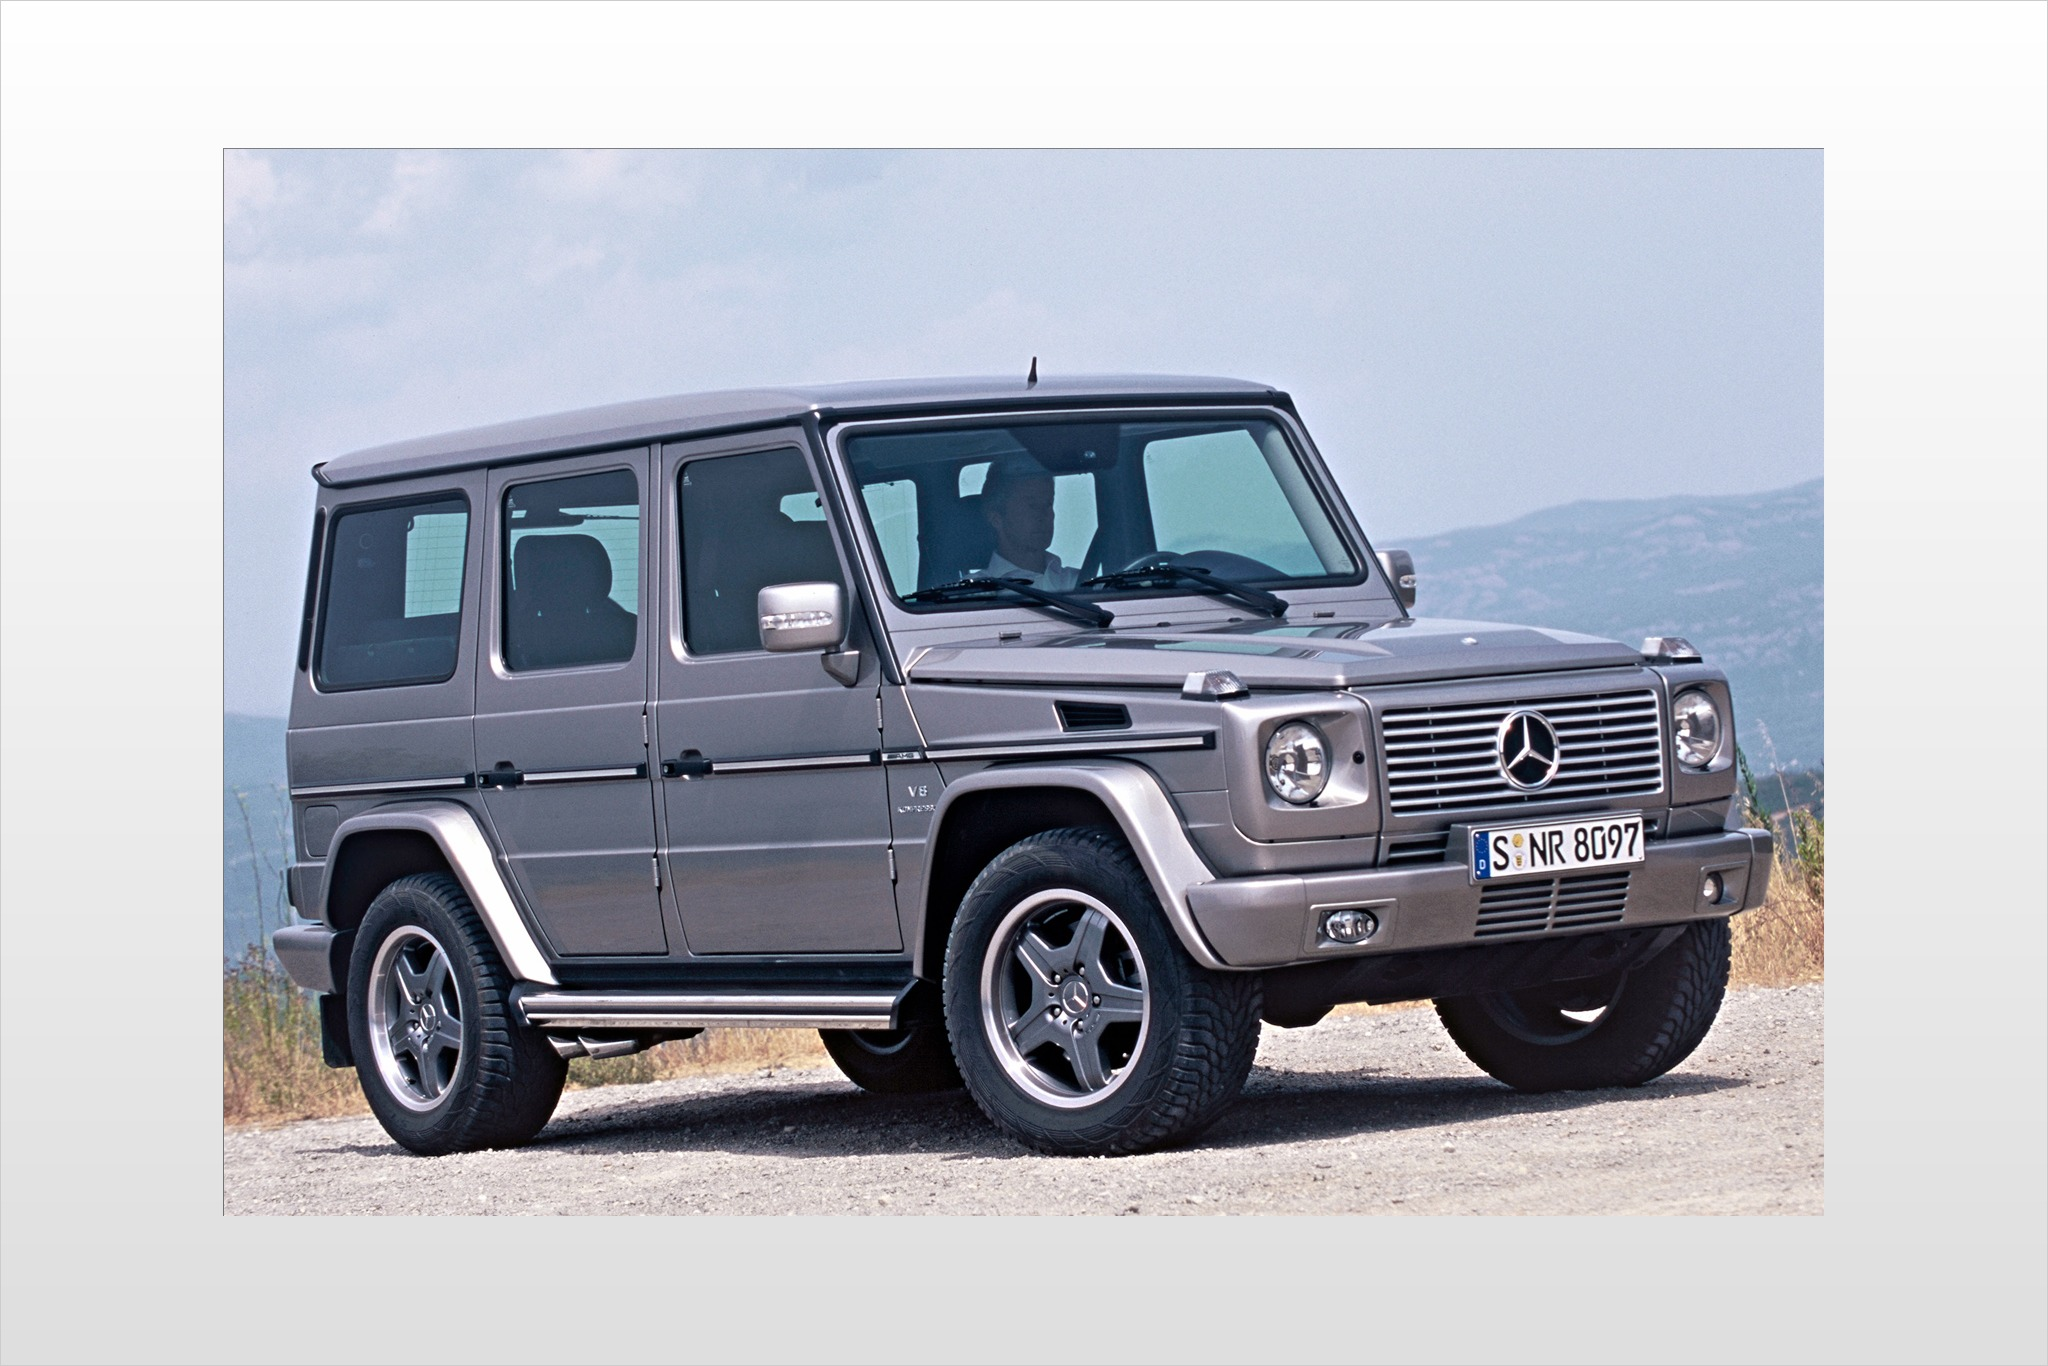 2007 mercedes benz g class image 2 for 2007 mercedes benz suv